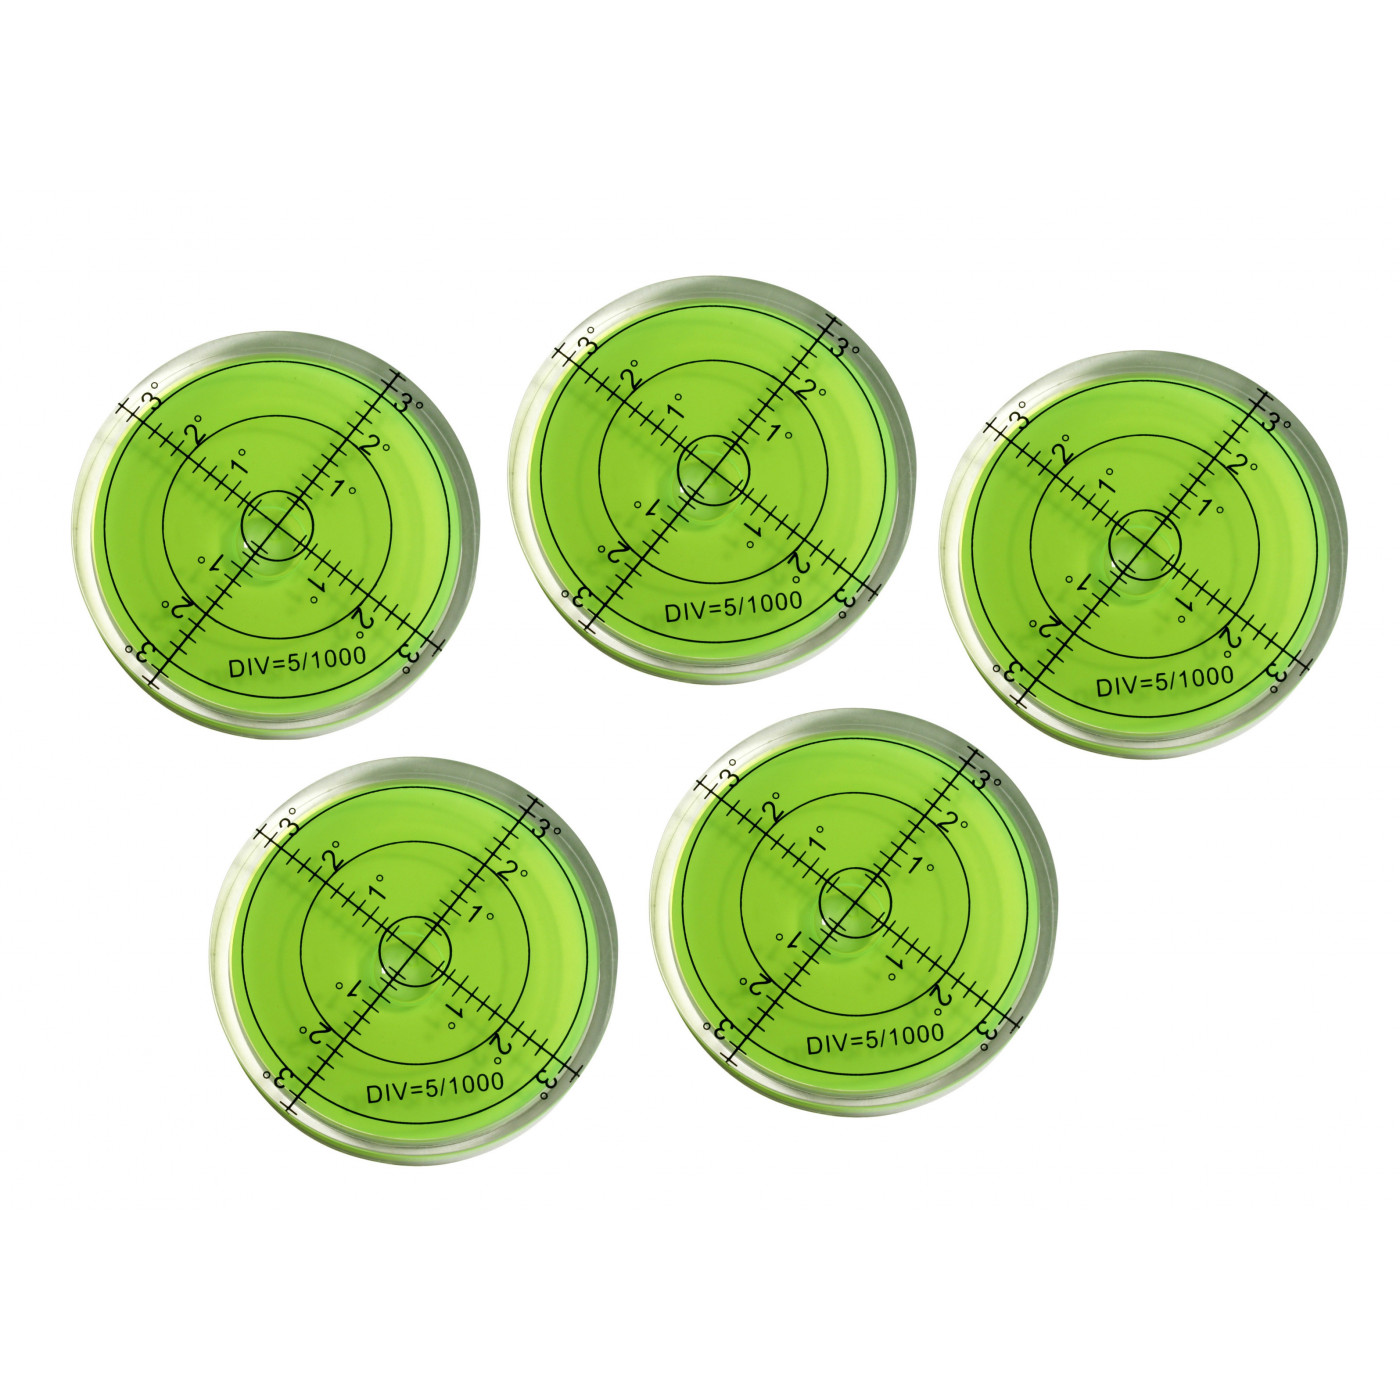 Set of 5 round bubble levels (66x11 mm, green)